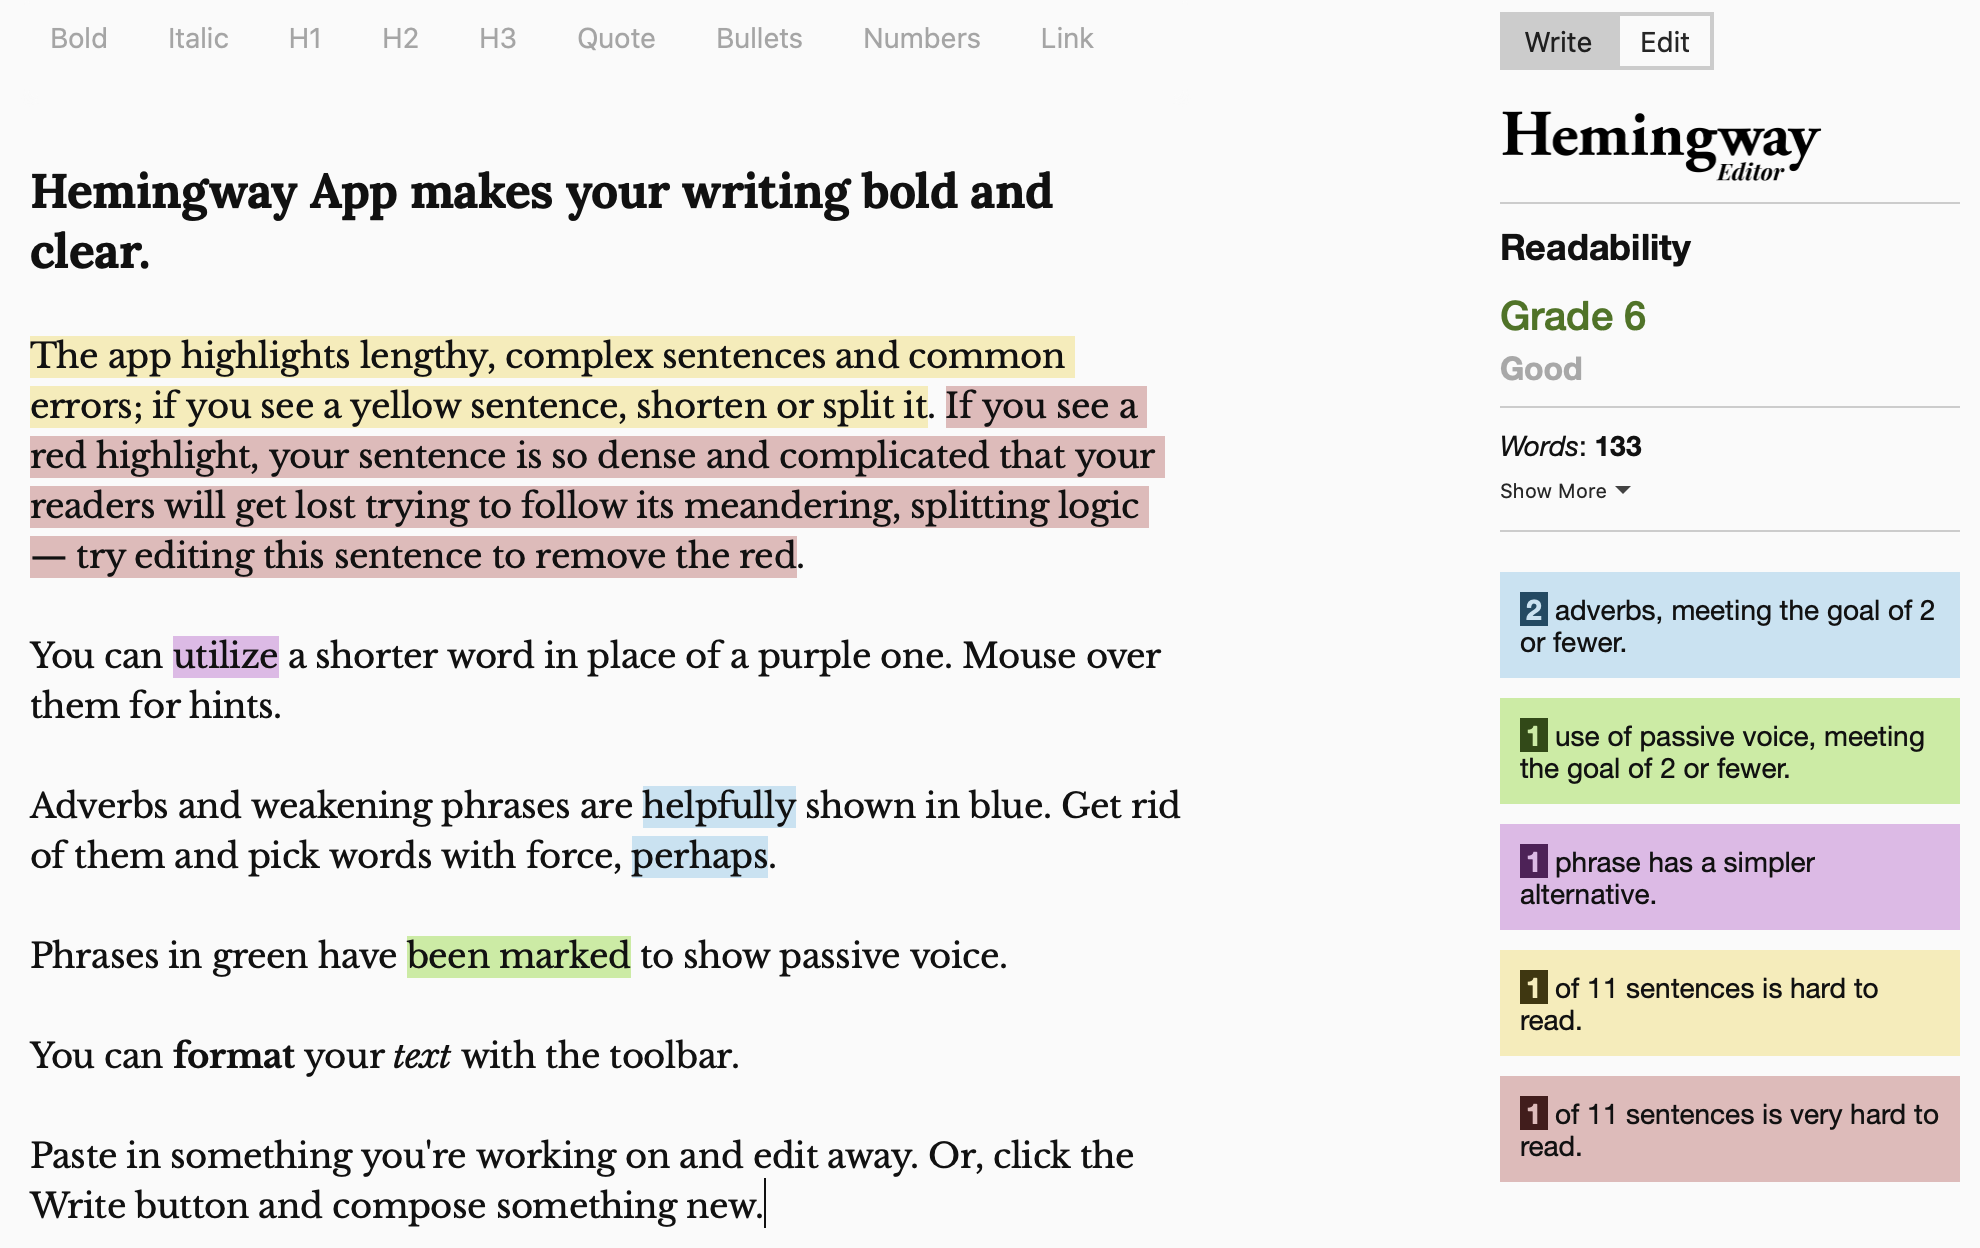 Hemingway app for making your writing concise